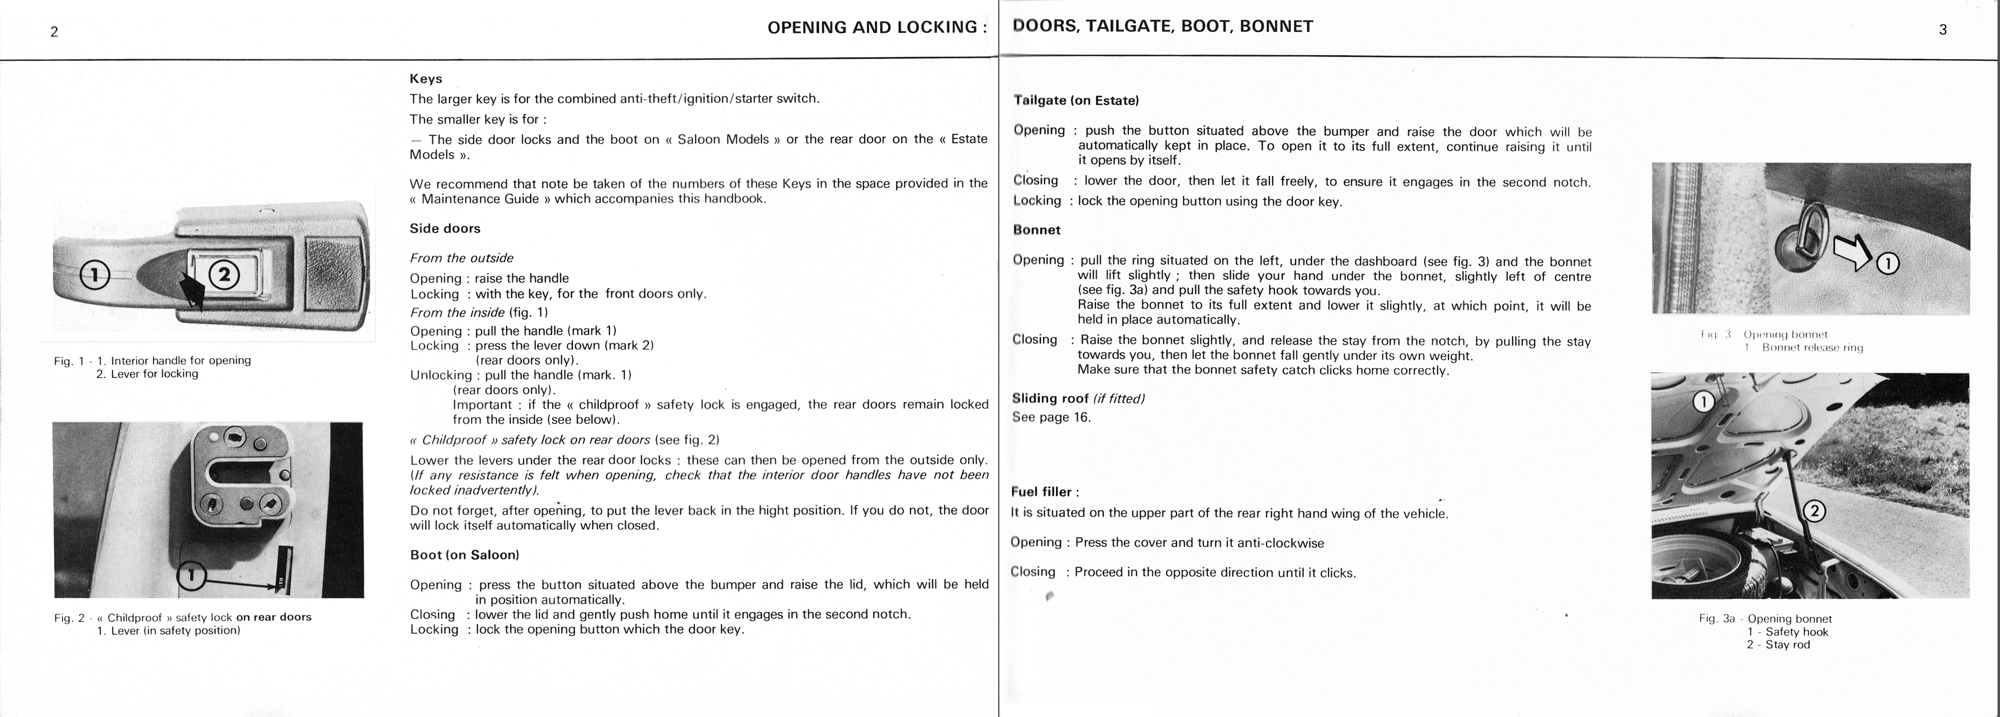 1976 Citroën GS owner's manual Page 1